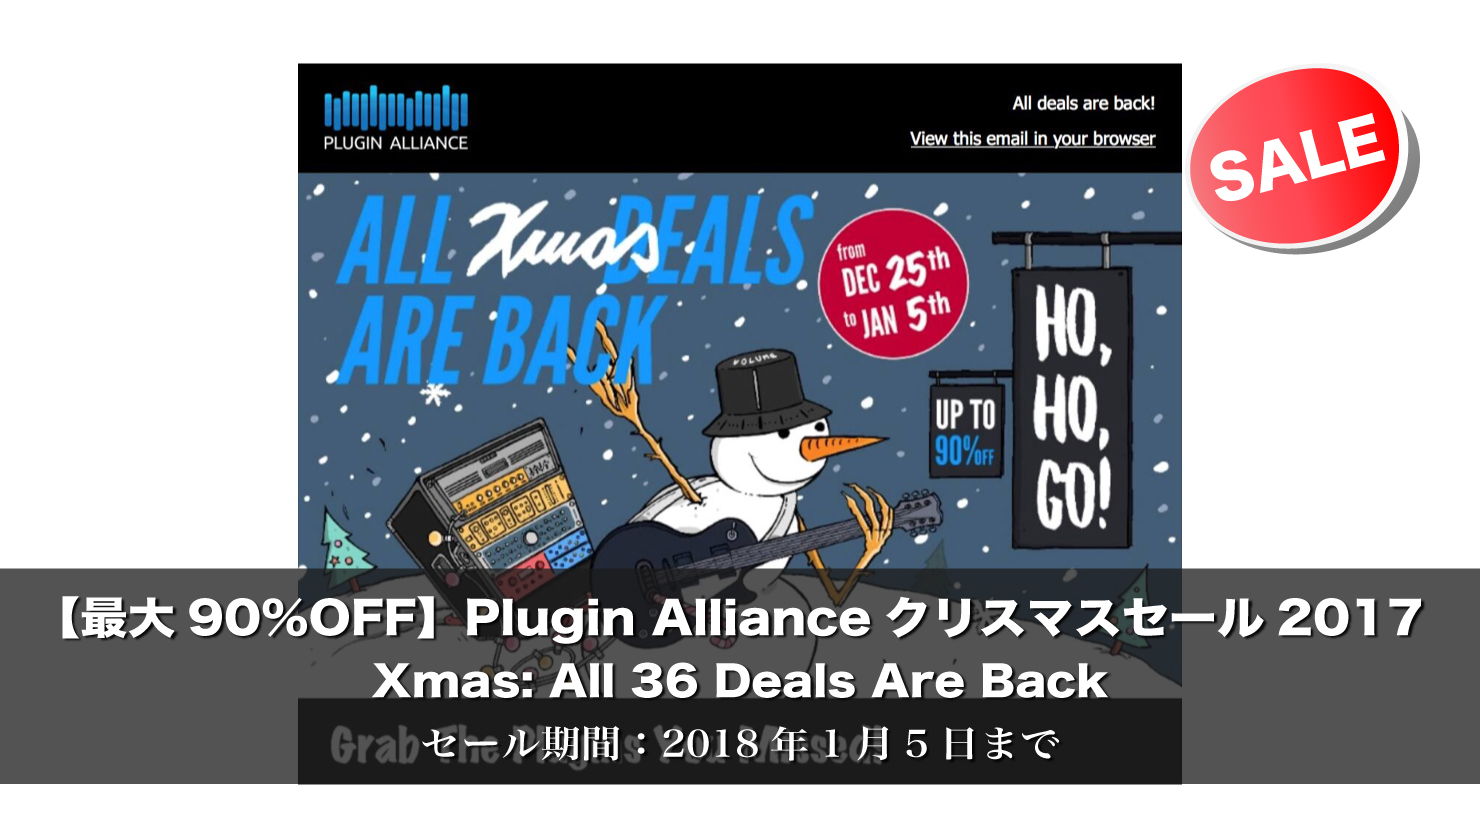 【最大90%OFF】Plugin Alliance クリスマスセール2017 Xmas: All 36 Deals Are Back